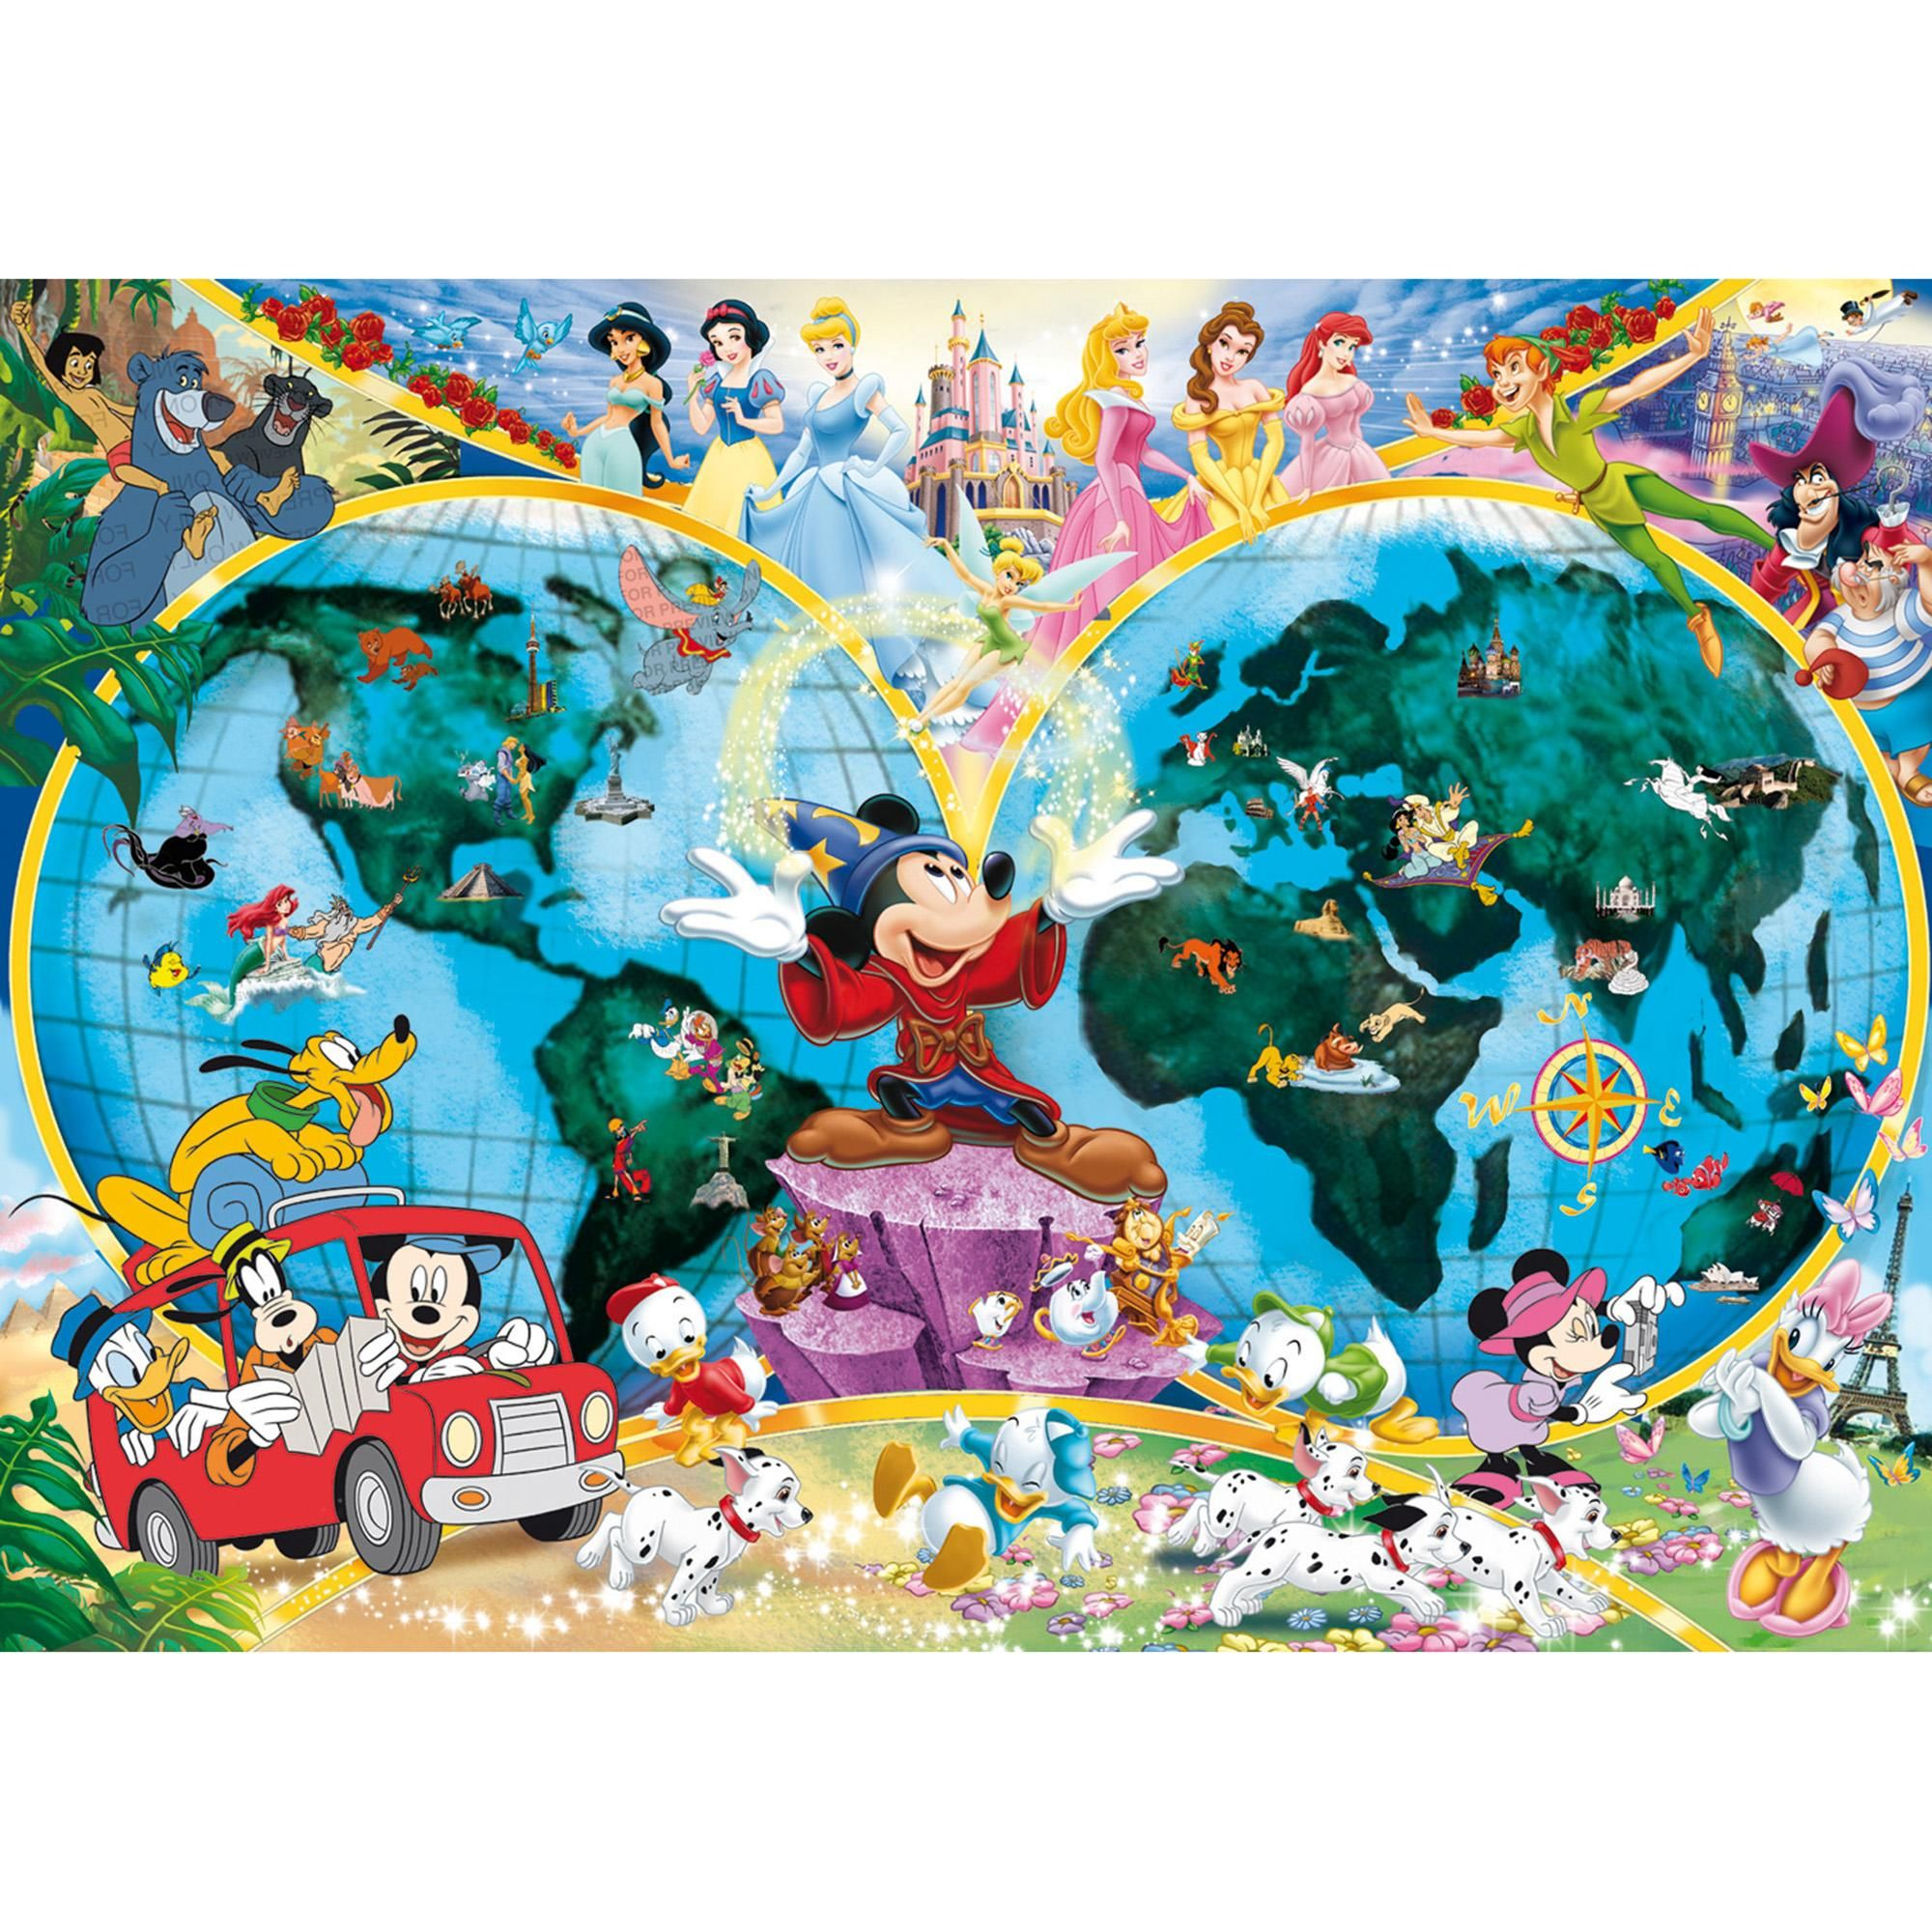 Ravensburger disney world map 1000 piece puzzle 1300 hamleys ravensburger disney world map 1000 piece puzzle 1300 hamleys for ravensburger disney world gumiabroncs Images